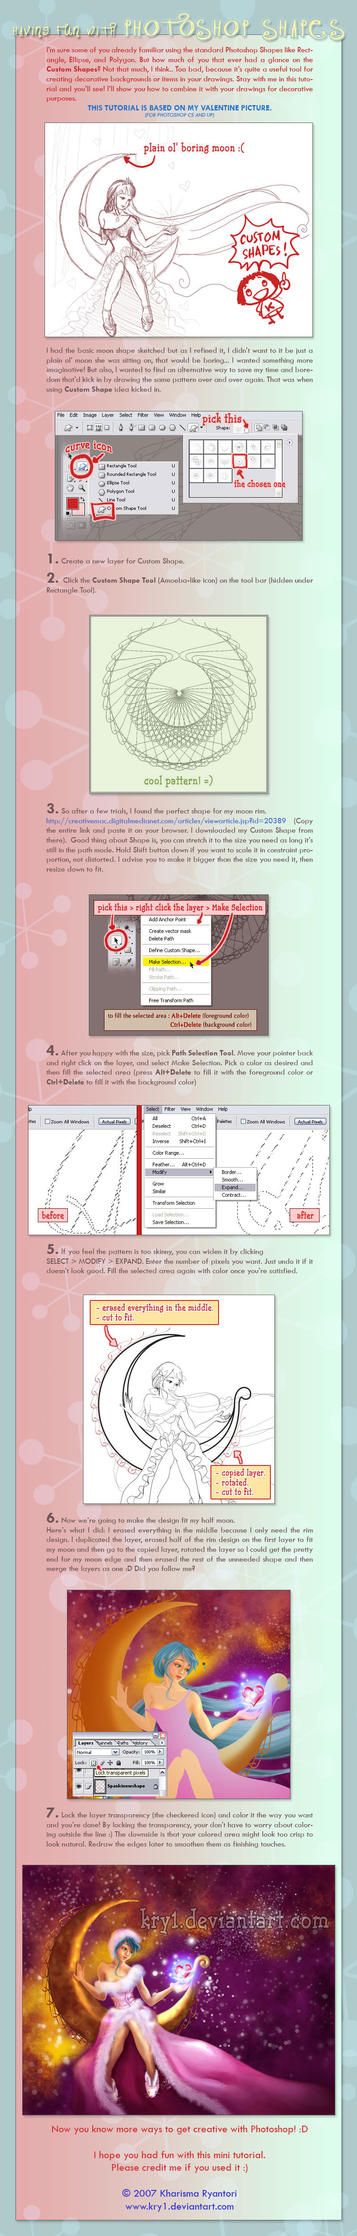 DigiPaintTutorial_CustomShapes by popnicute